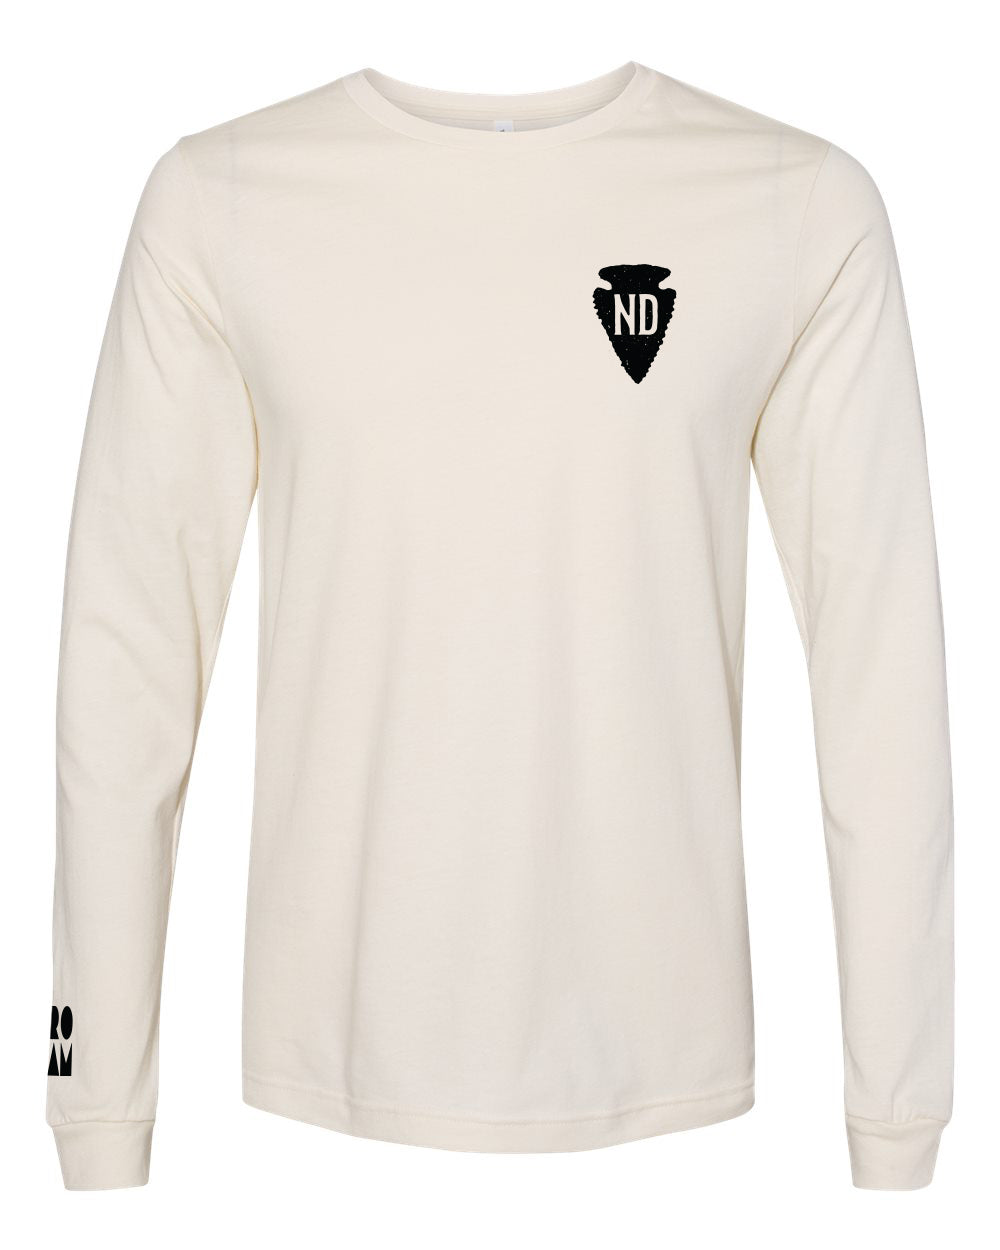 ND Arrowhead Long Sleeve Tee - Natural - Front